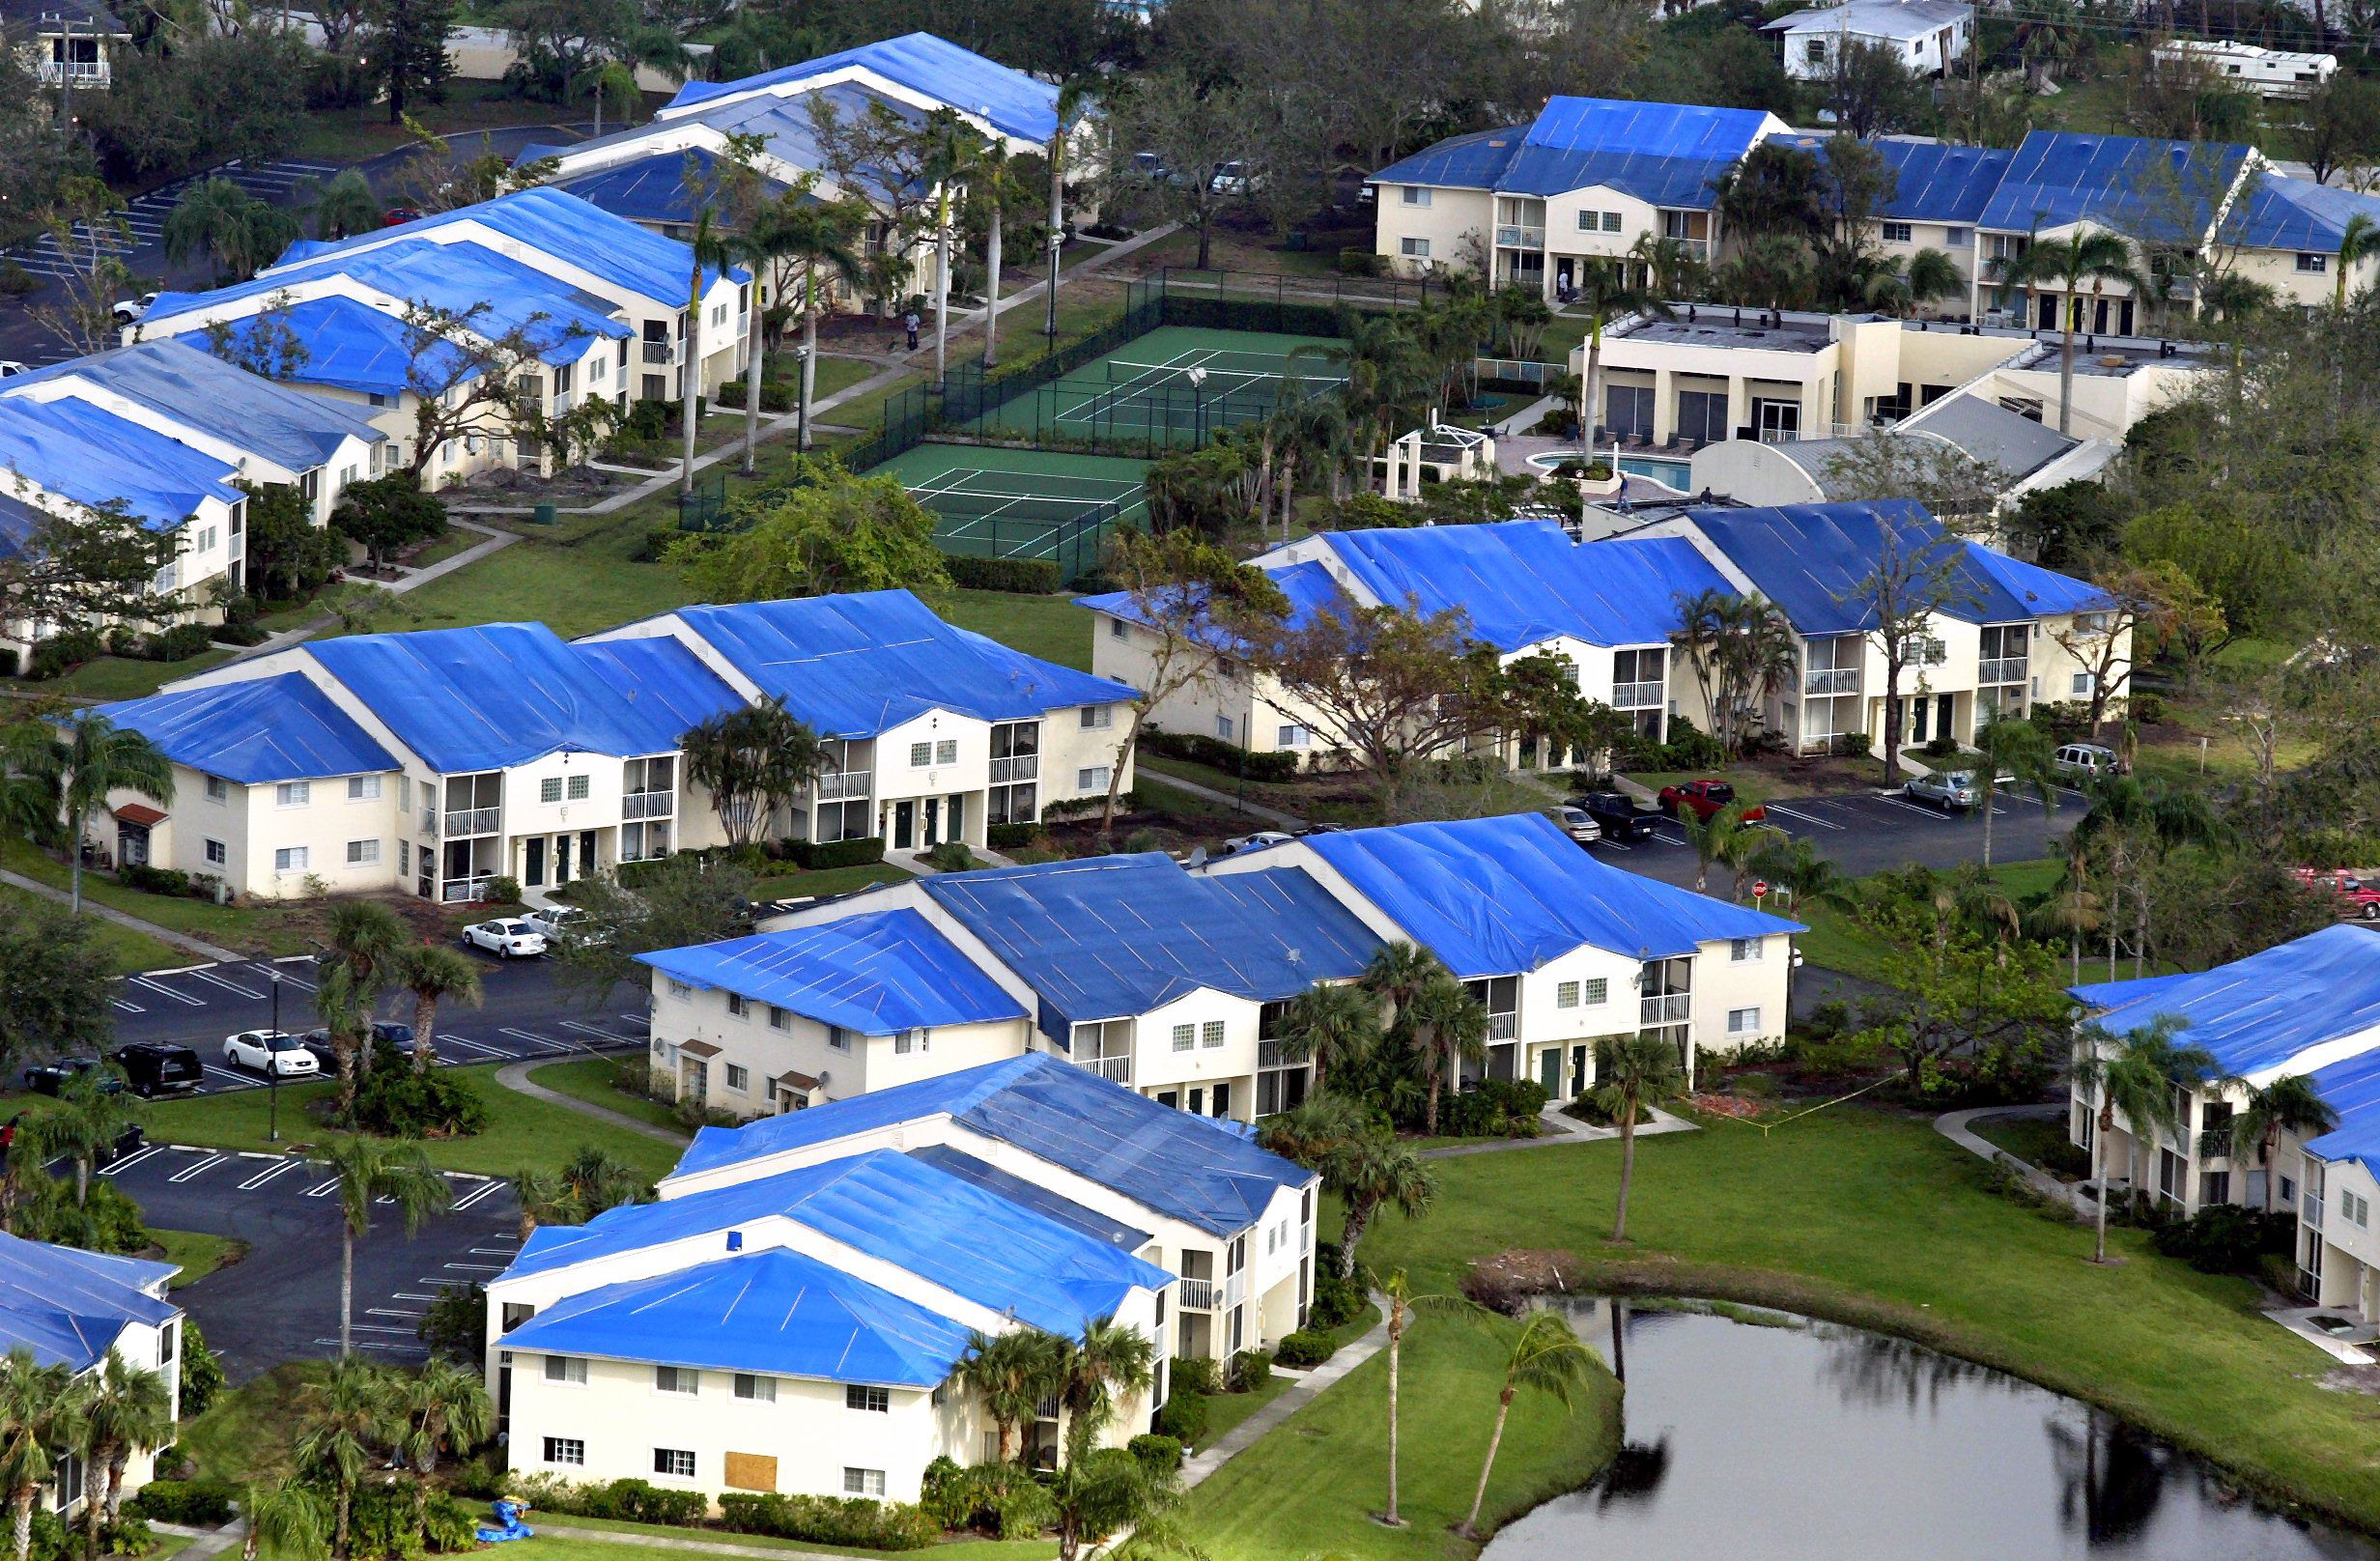 Group of houses with blue tarps on them